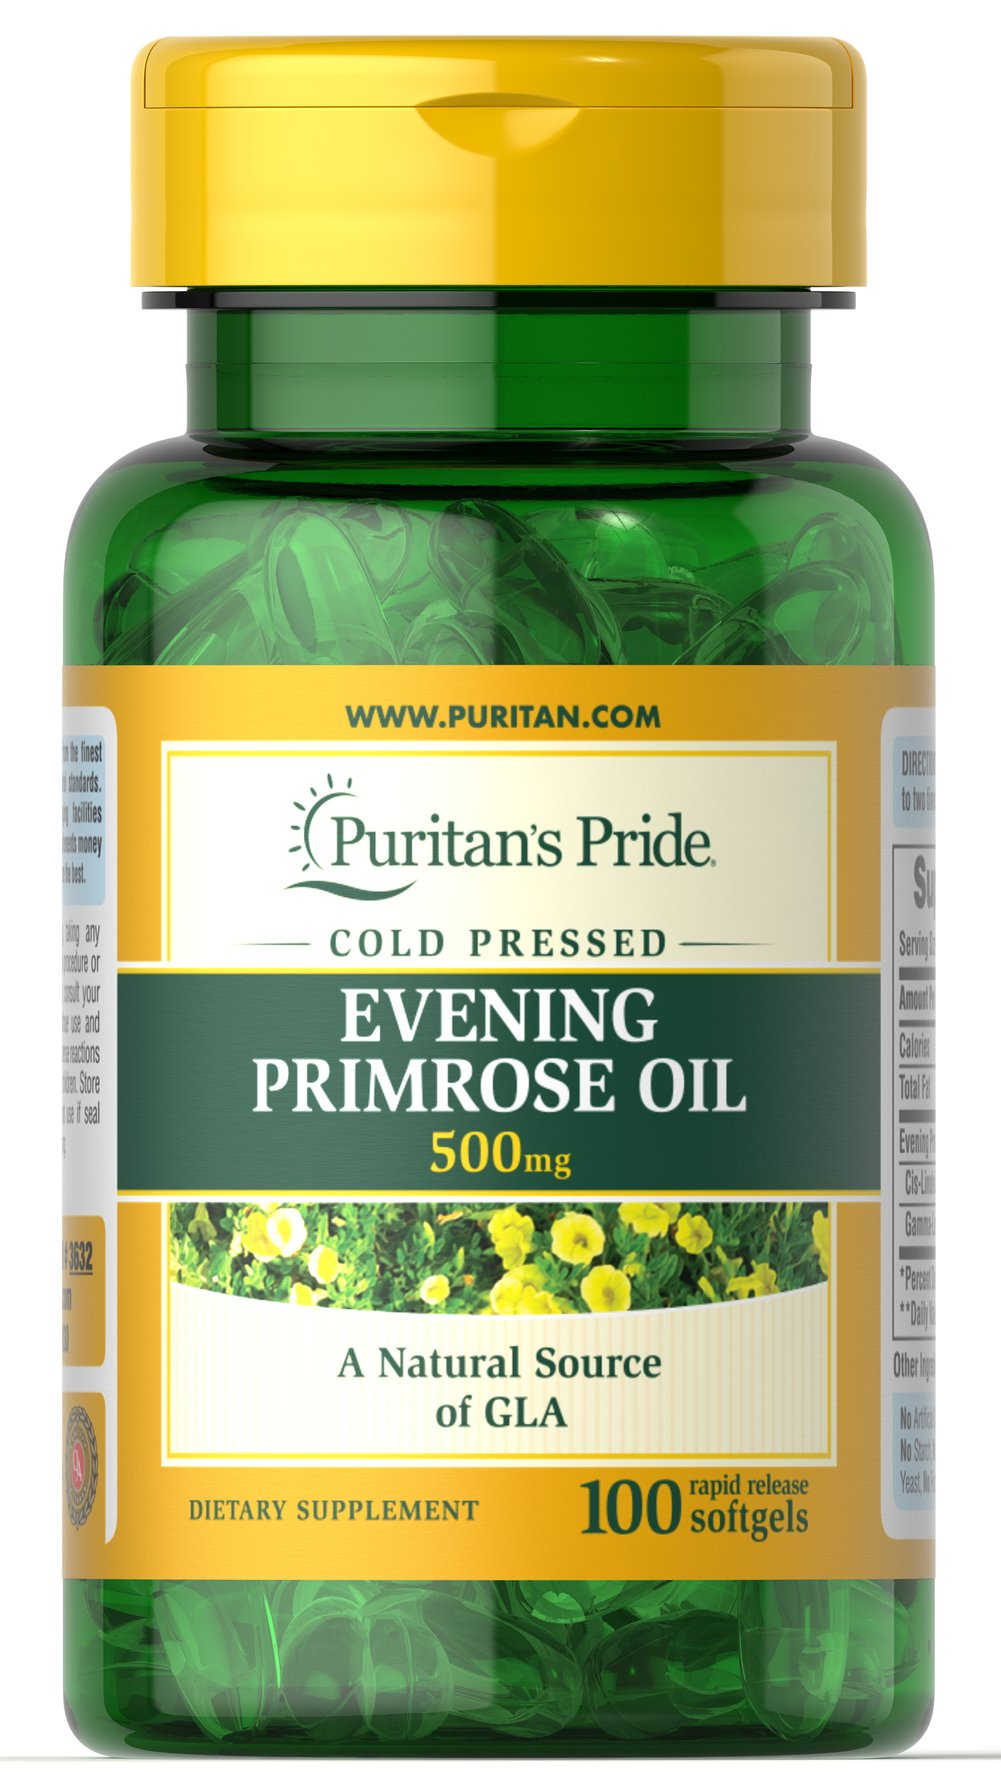 Evening Primrose Oil 500 mg with GLA <p>For centuries, EPO has been used to provide nutritional support for women with premenstrual syndrome (PMS); it may also play a role in promoting smooth, healthy-looking skin.**</p><p>These easy-to-swallow softgels are a natural source of GLA (Gamma Linolenic Acid). Our EPO contains one of the most biologically active forms of this Omega-6 fatty acid available today.</p>  100 Softgels 500 mg $12.99